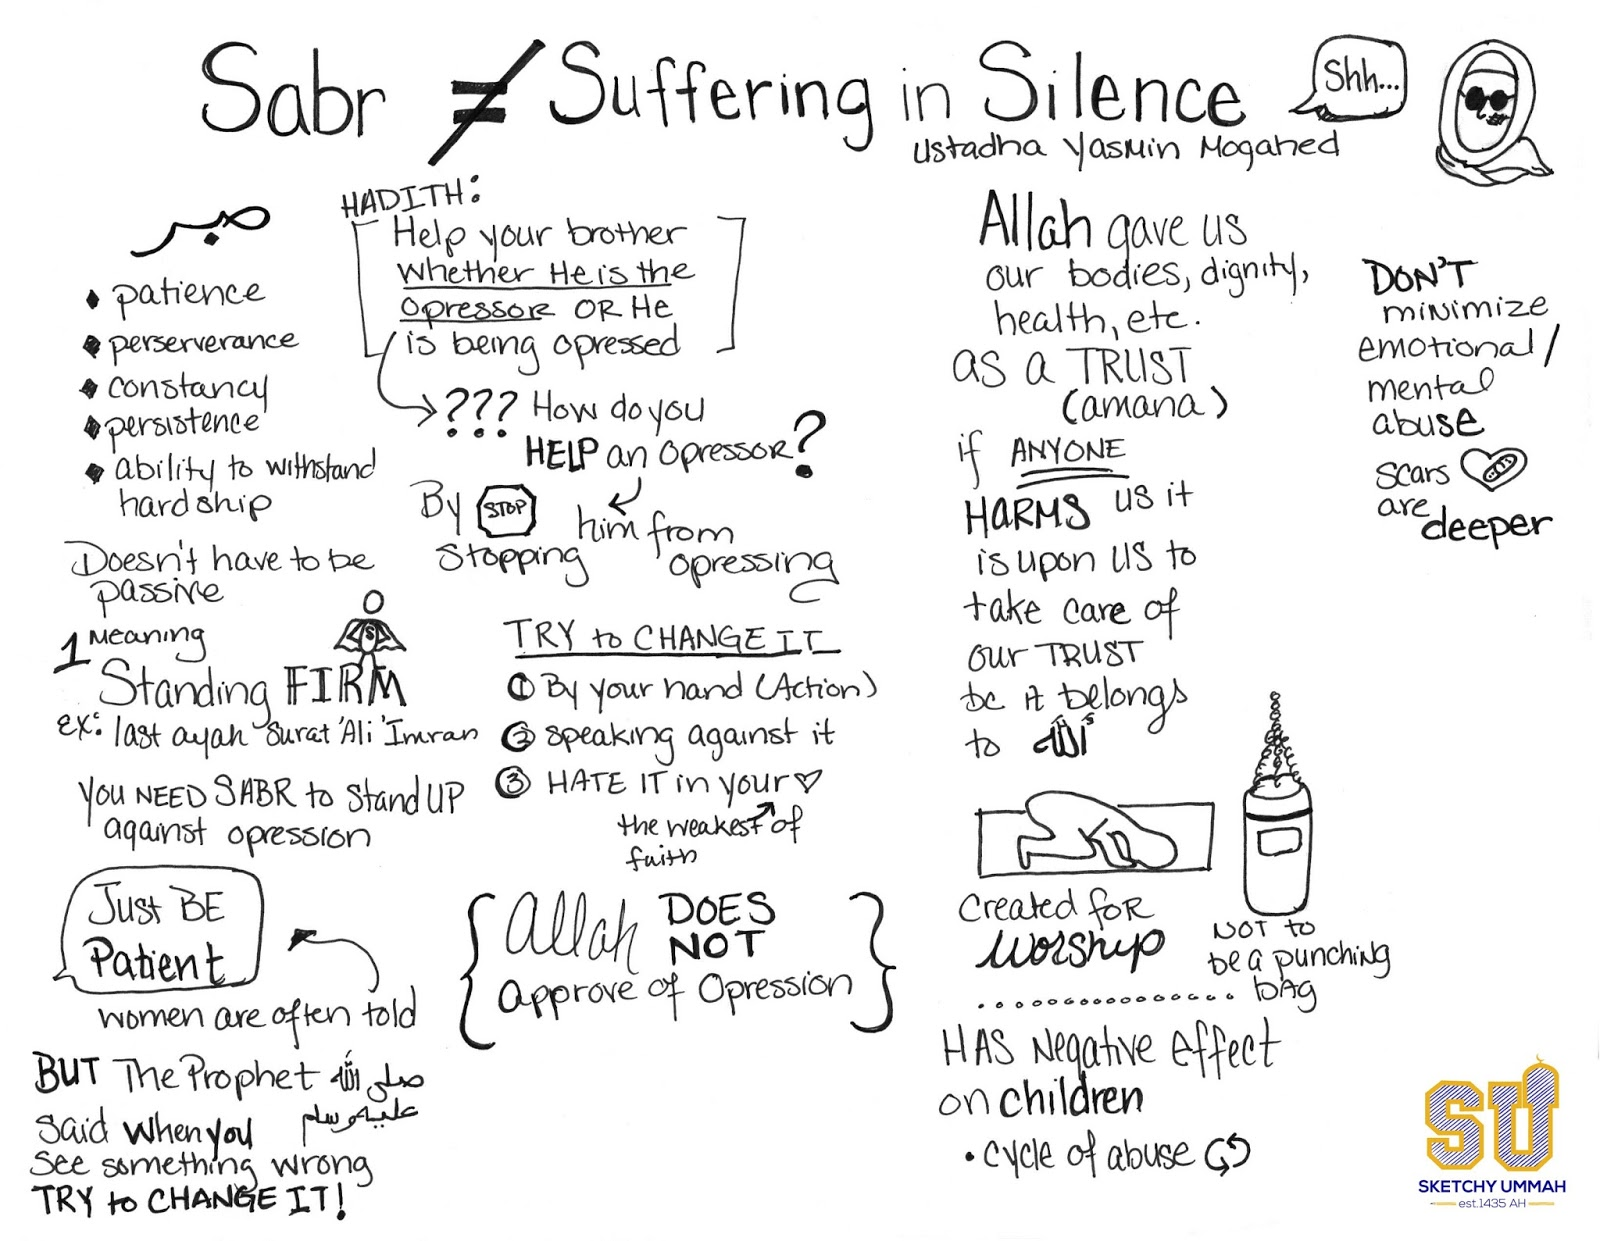 Sabr is not Suffering in Silence  #2